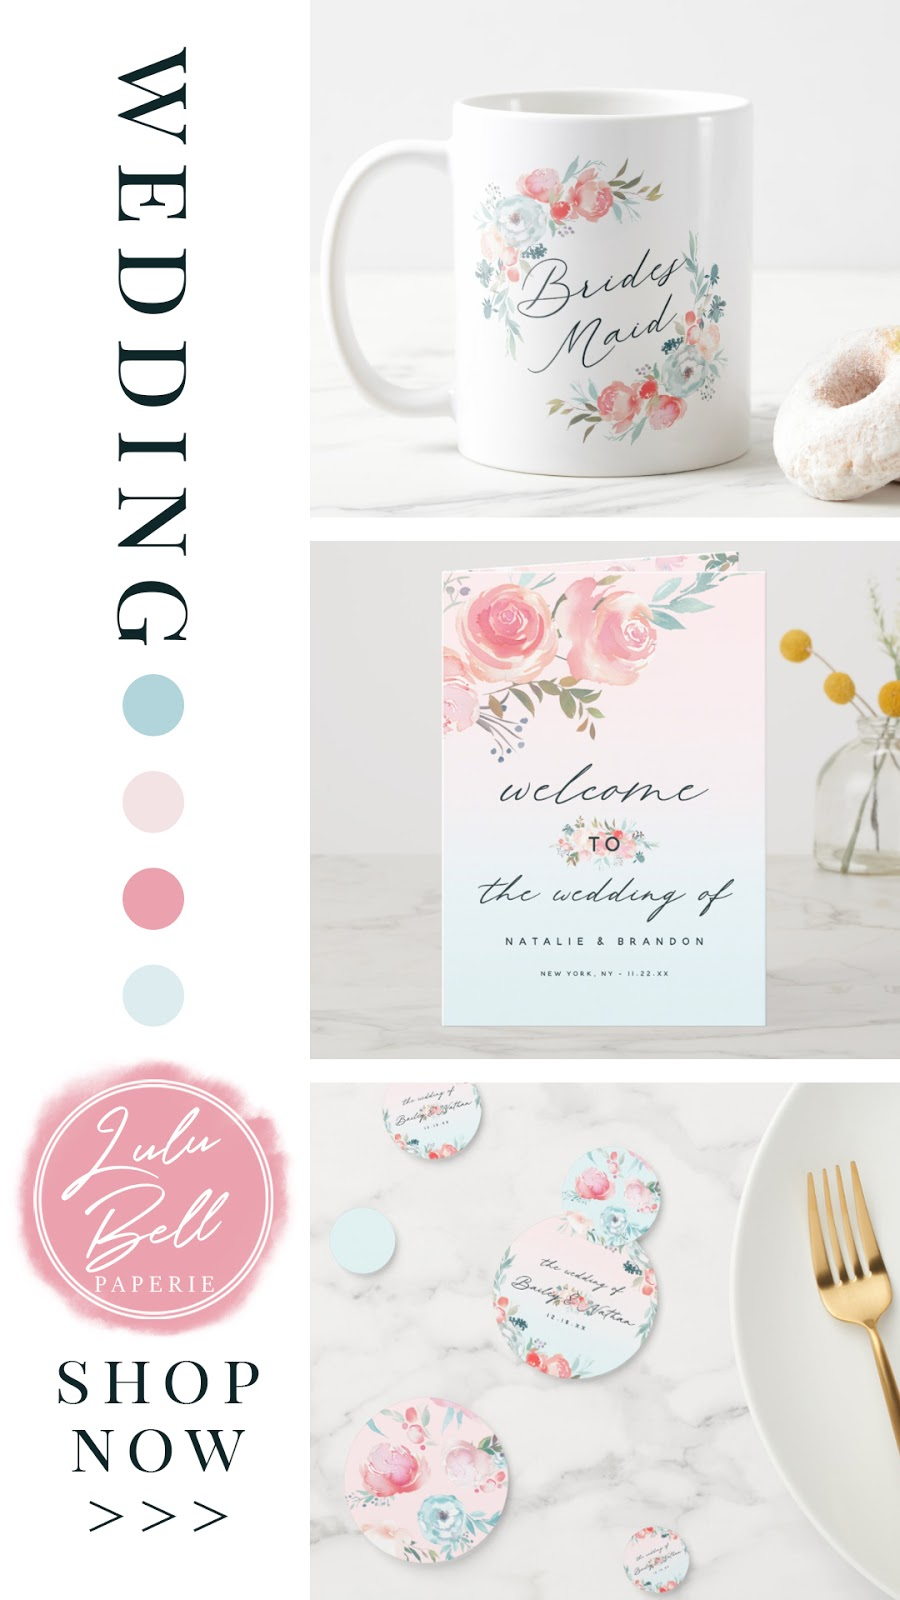 French Garden Floral Wedding Suite - Bridal Party Mugs, Wedding Programs, and Reception Table Confetti